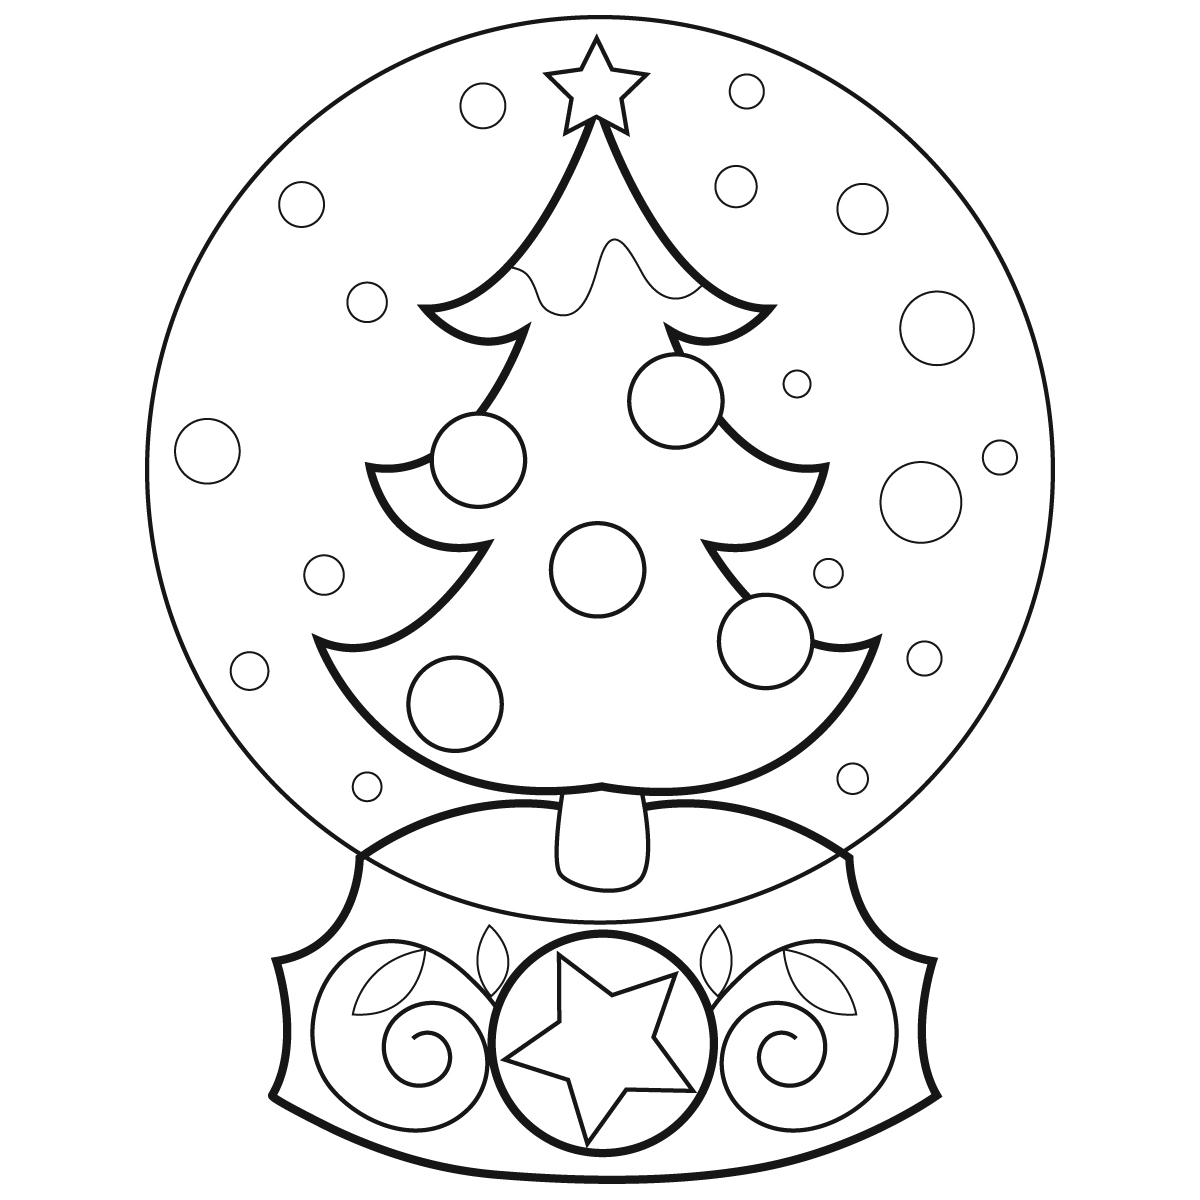 fox snow globe coloring pages - photo#28